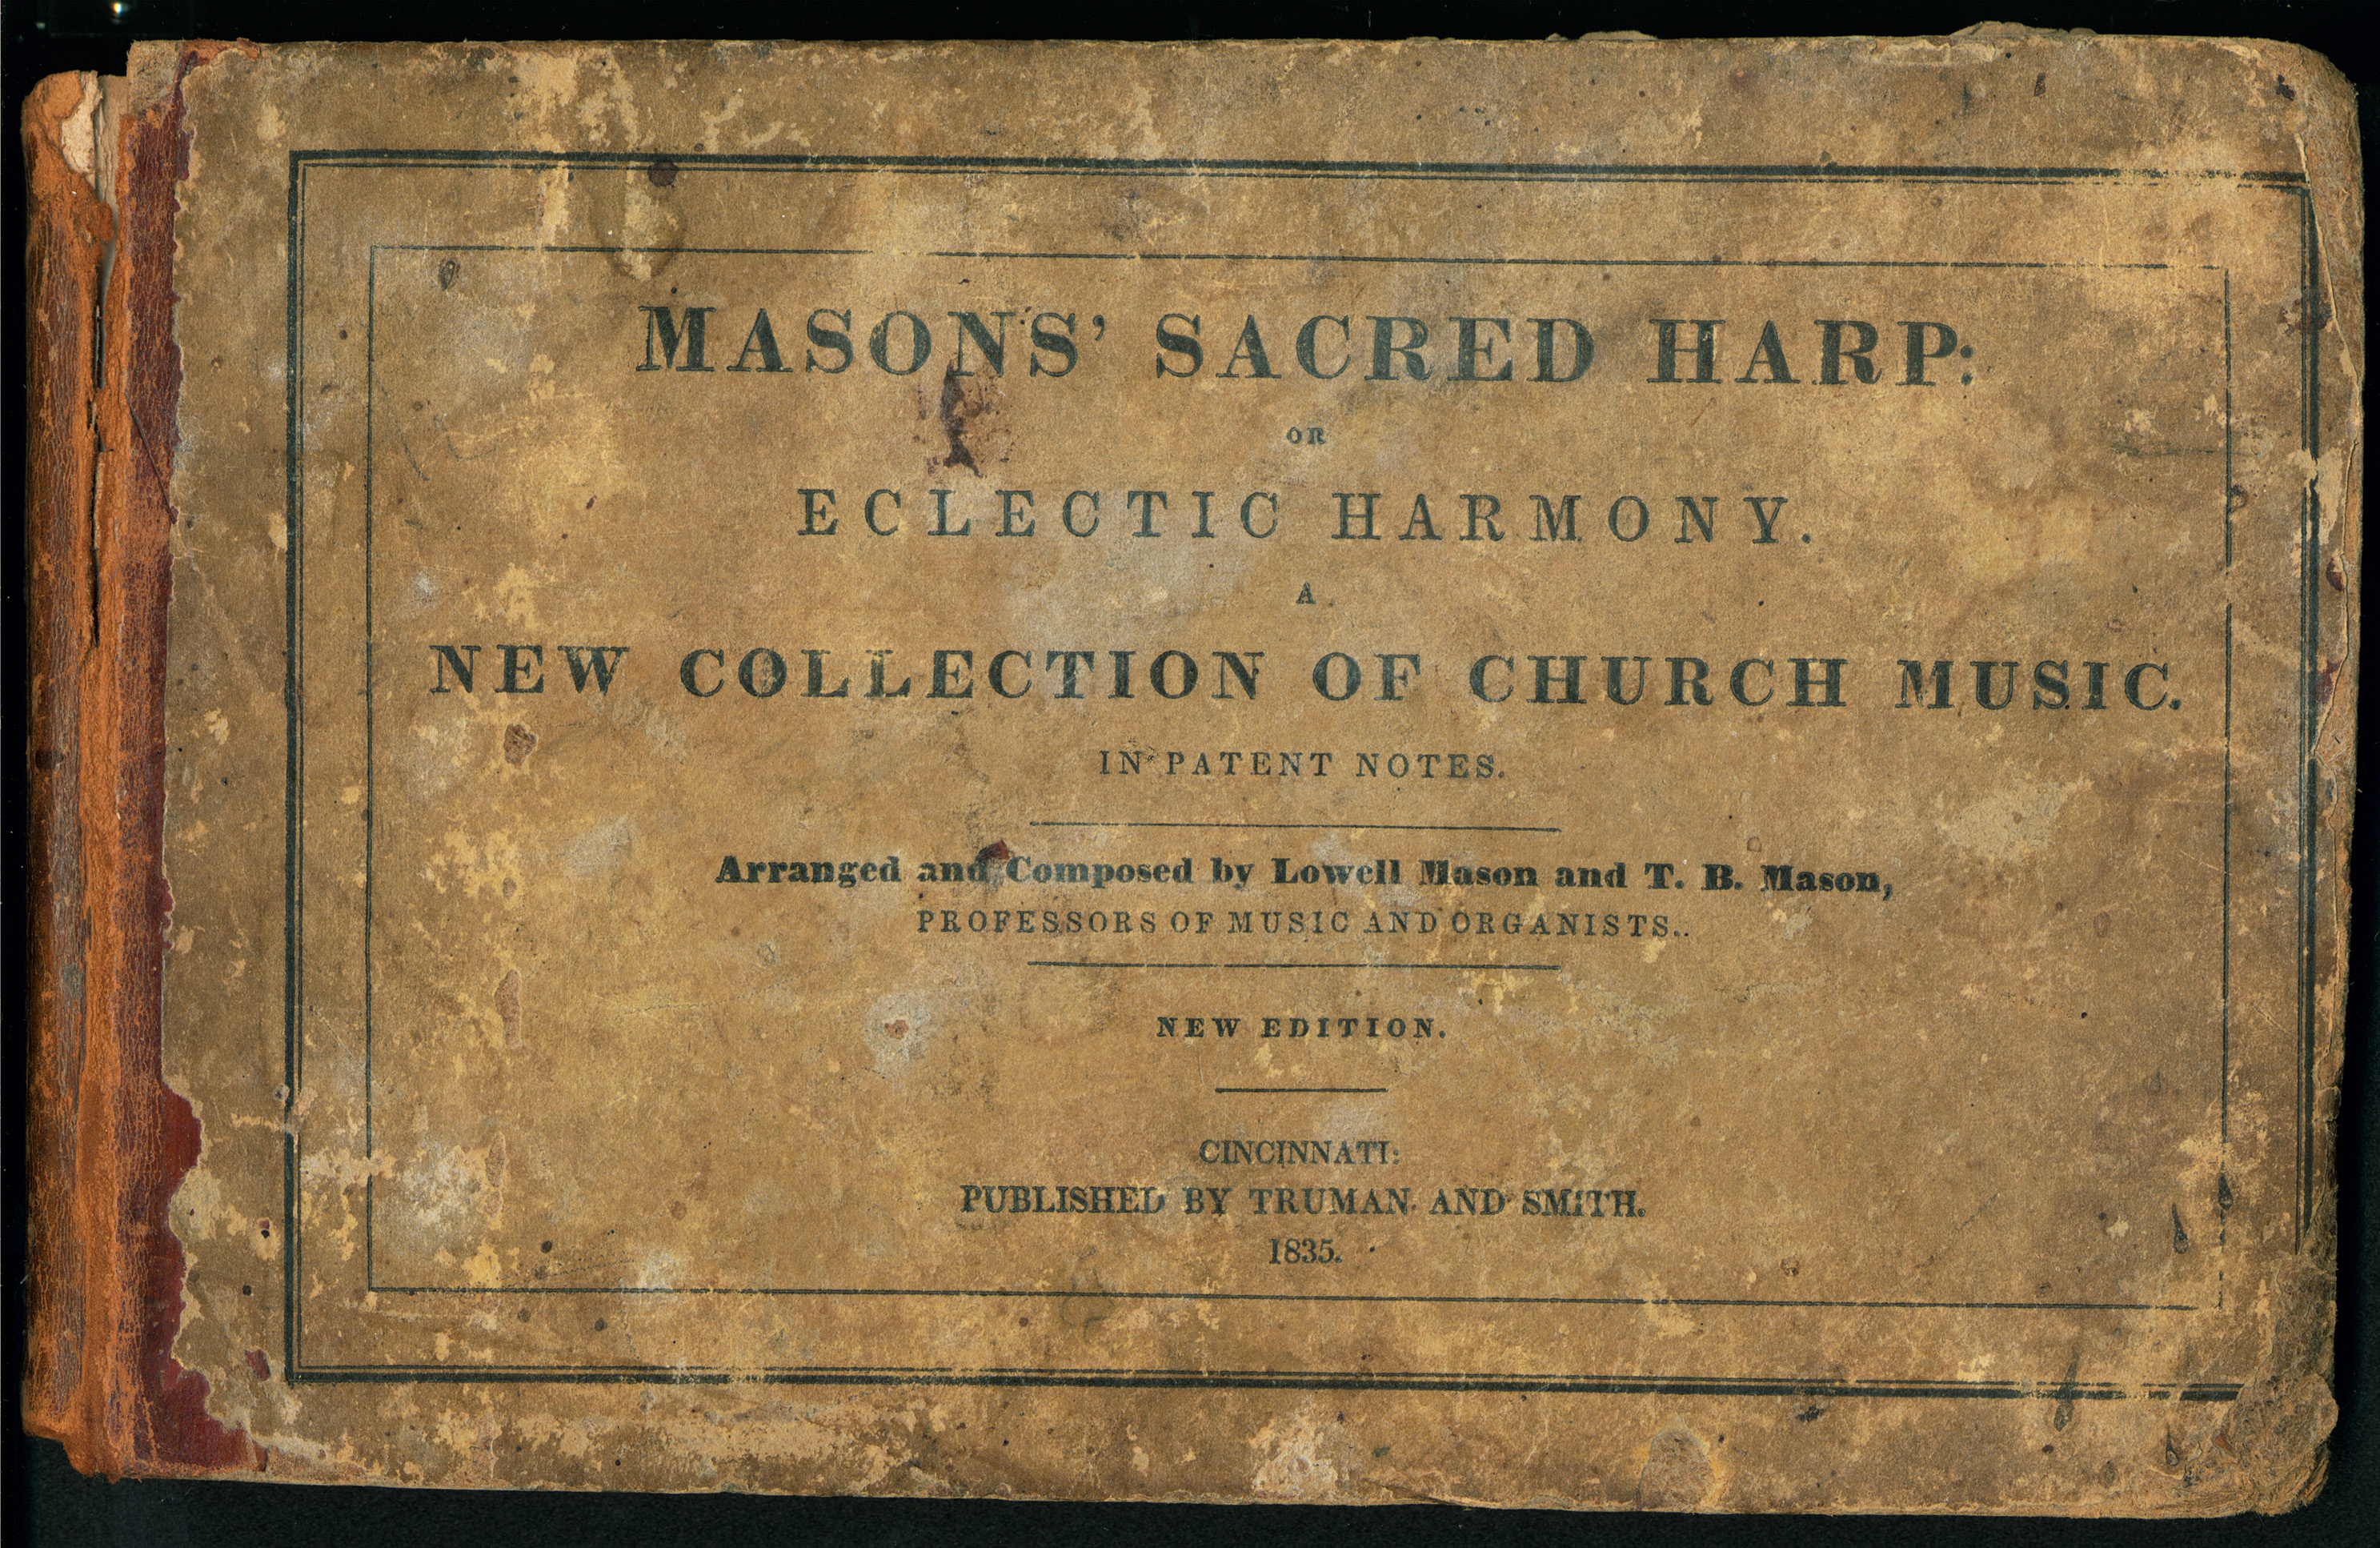 Newsletter, Vol  6, No  2 | Page 2 of 13 | The Sacred Harp